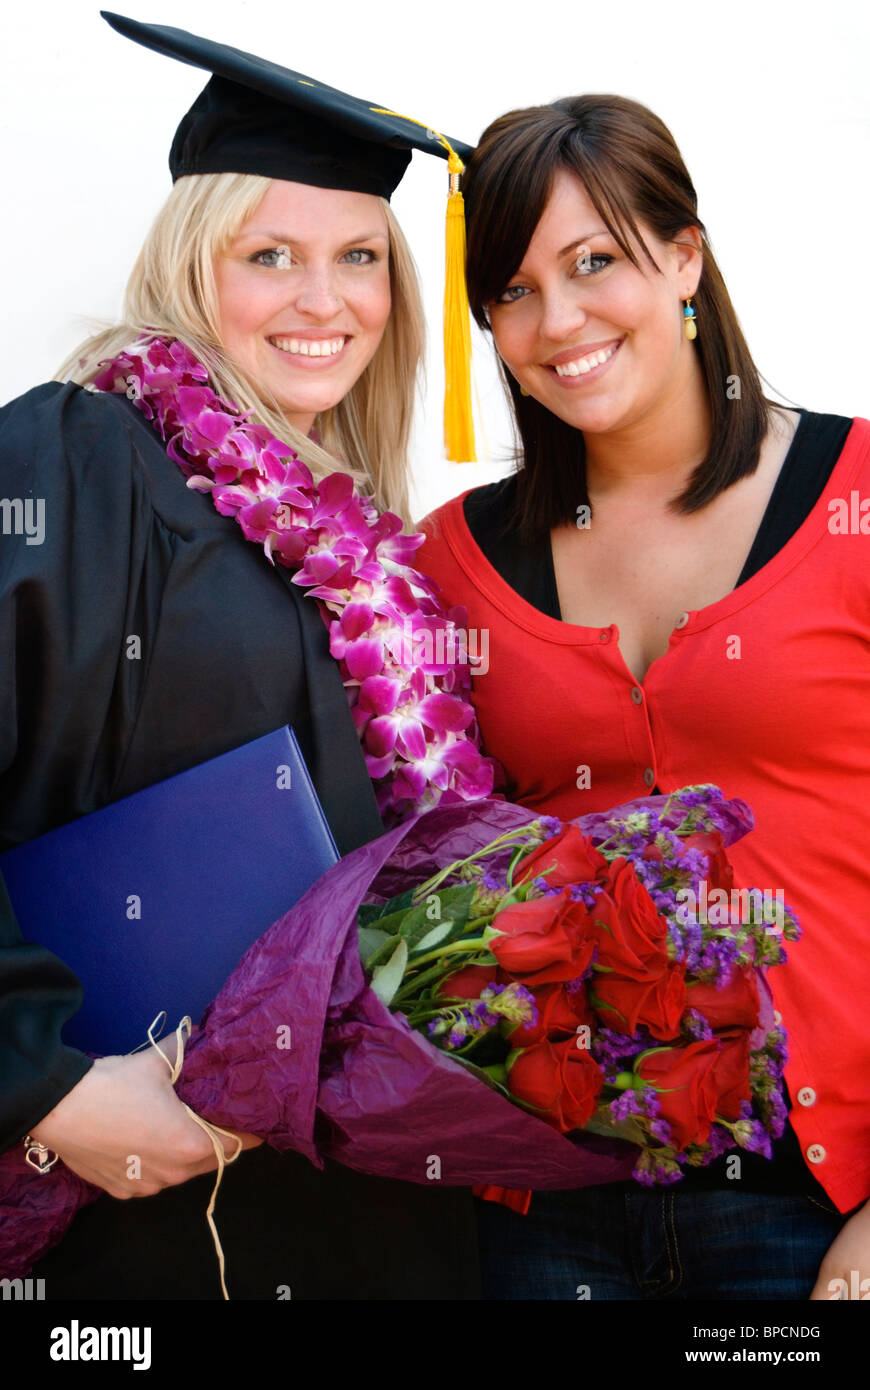 A smiling graduate in cap and gown wearing lei stands with supportive friend. Stock Photo